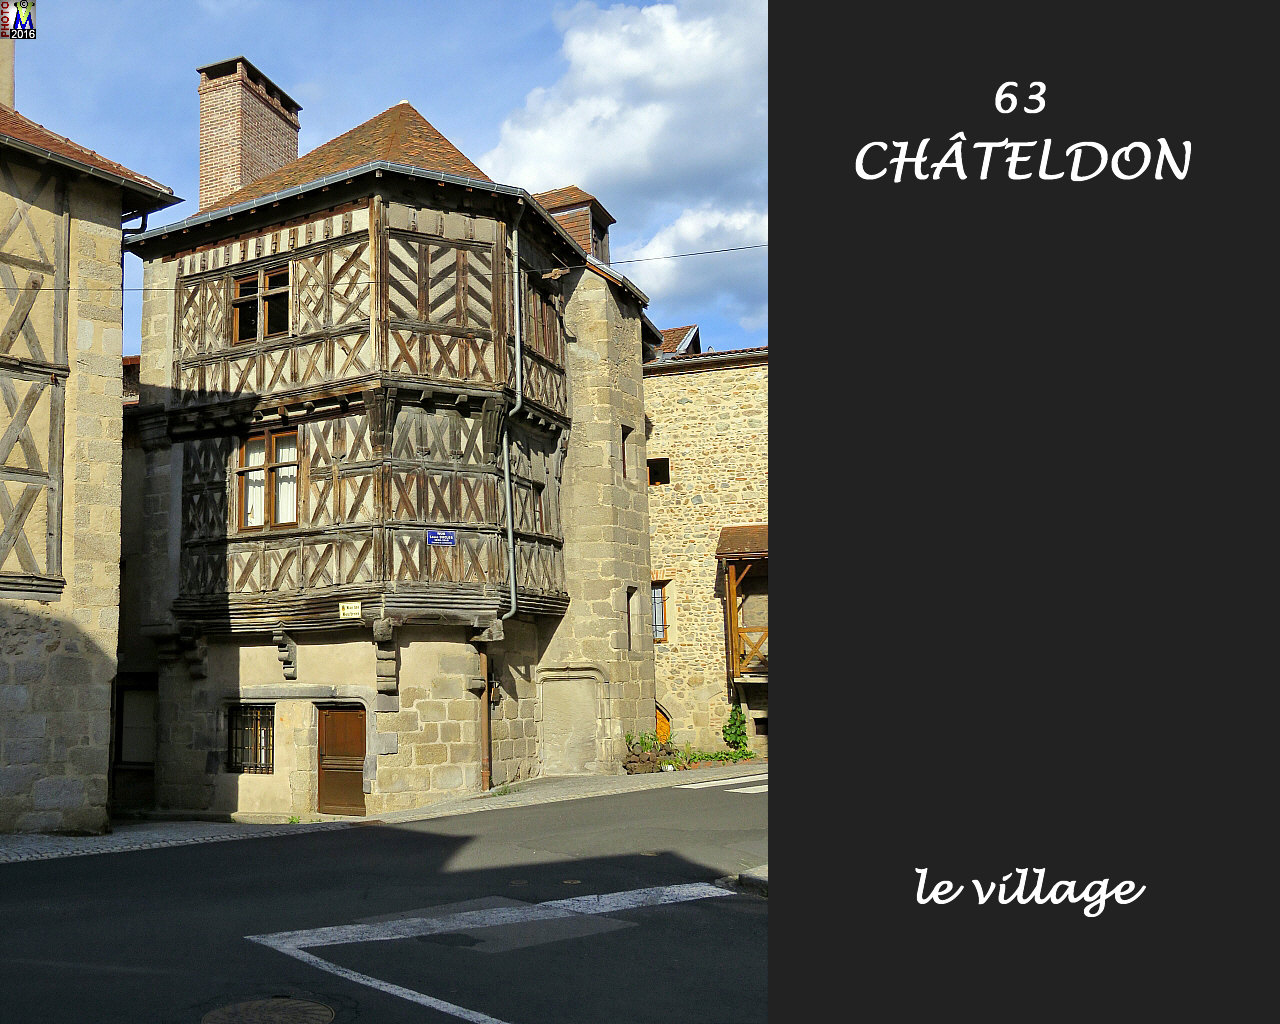 63CHATELDON_village_118.jpg